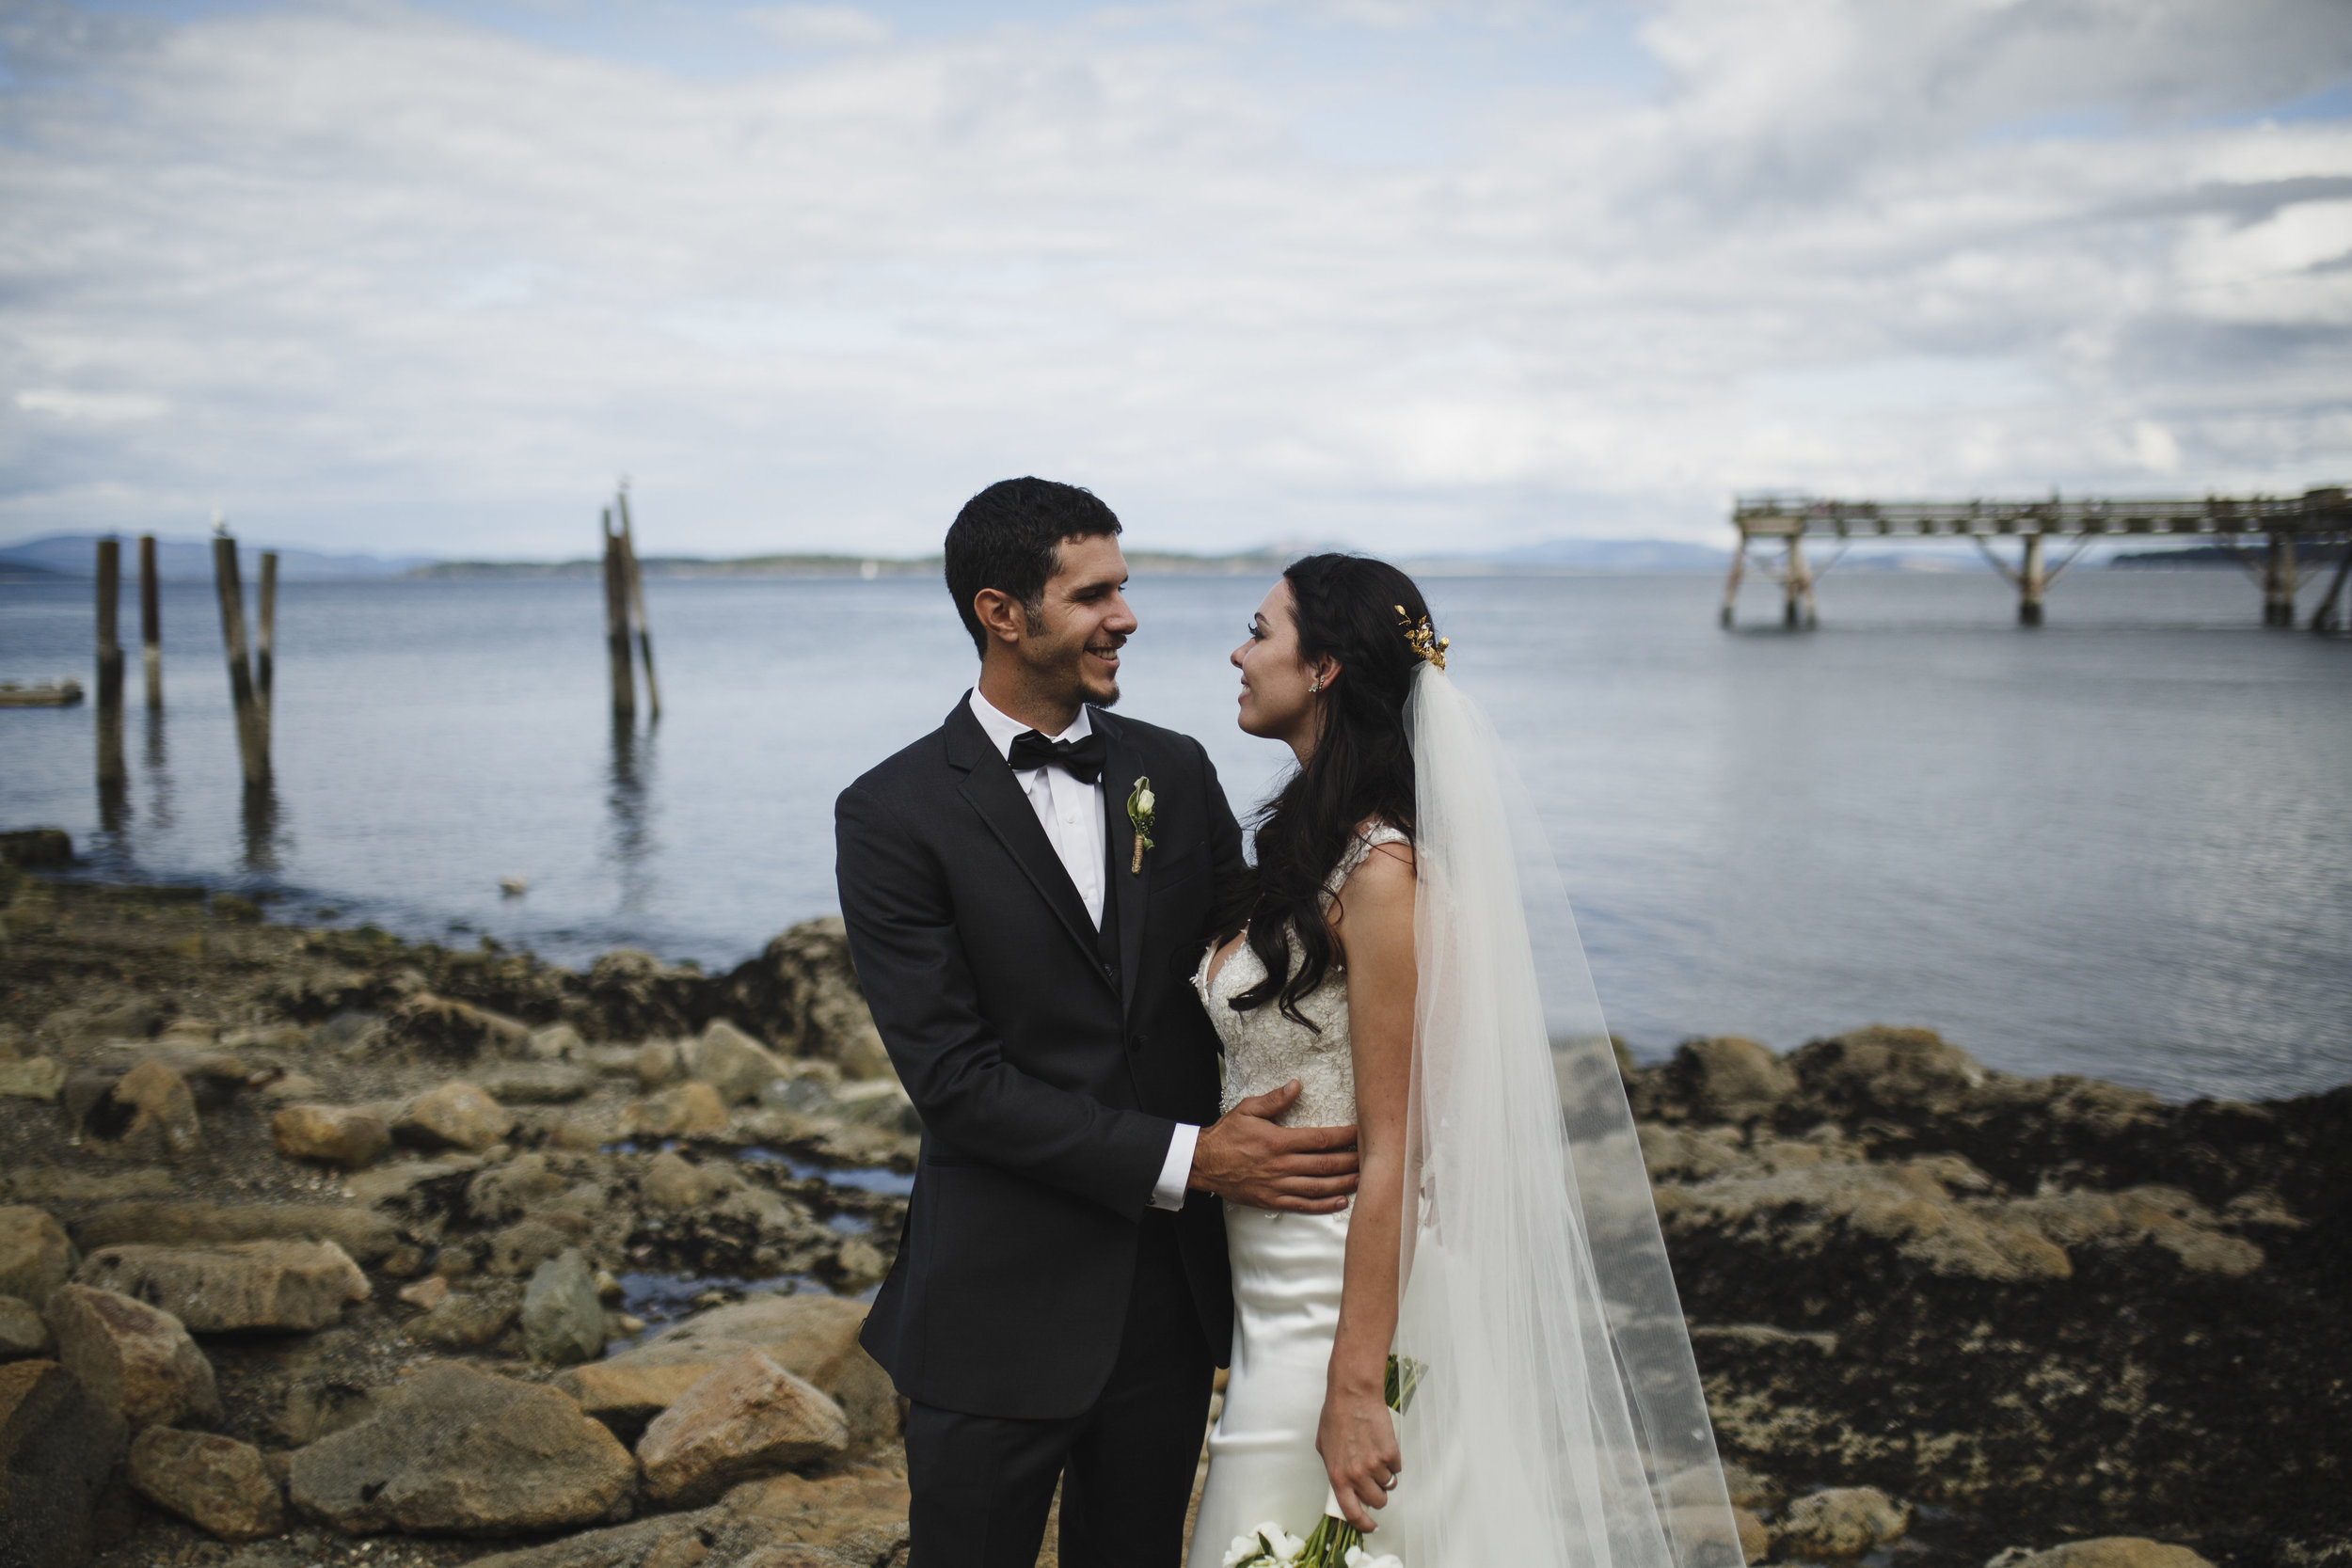 The bride and the groom smiling at each other Beach wedding Tofino Sea Cider Vancouver Island